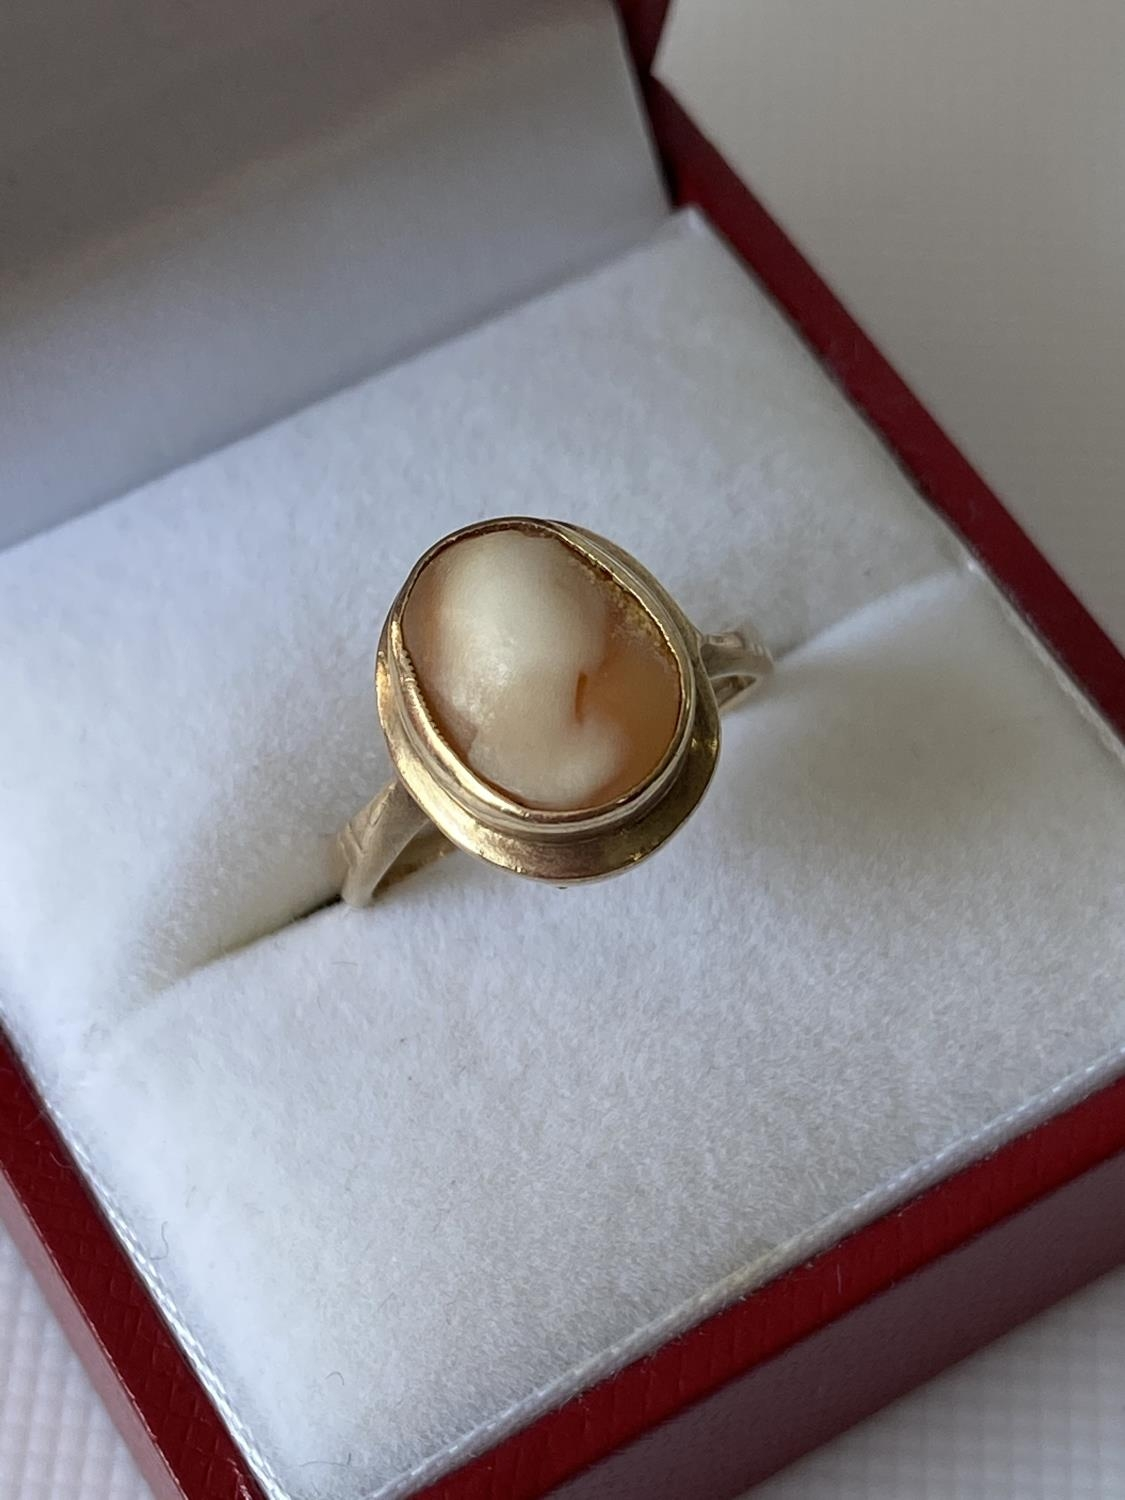 An antique 9ct gold & cameo carved ring [size I] [2.27g] - Image 3 of 6